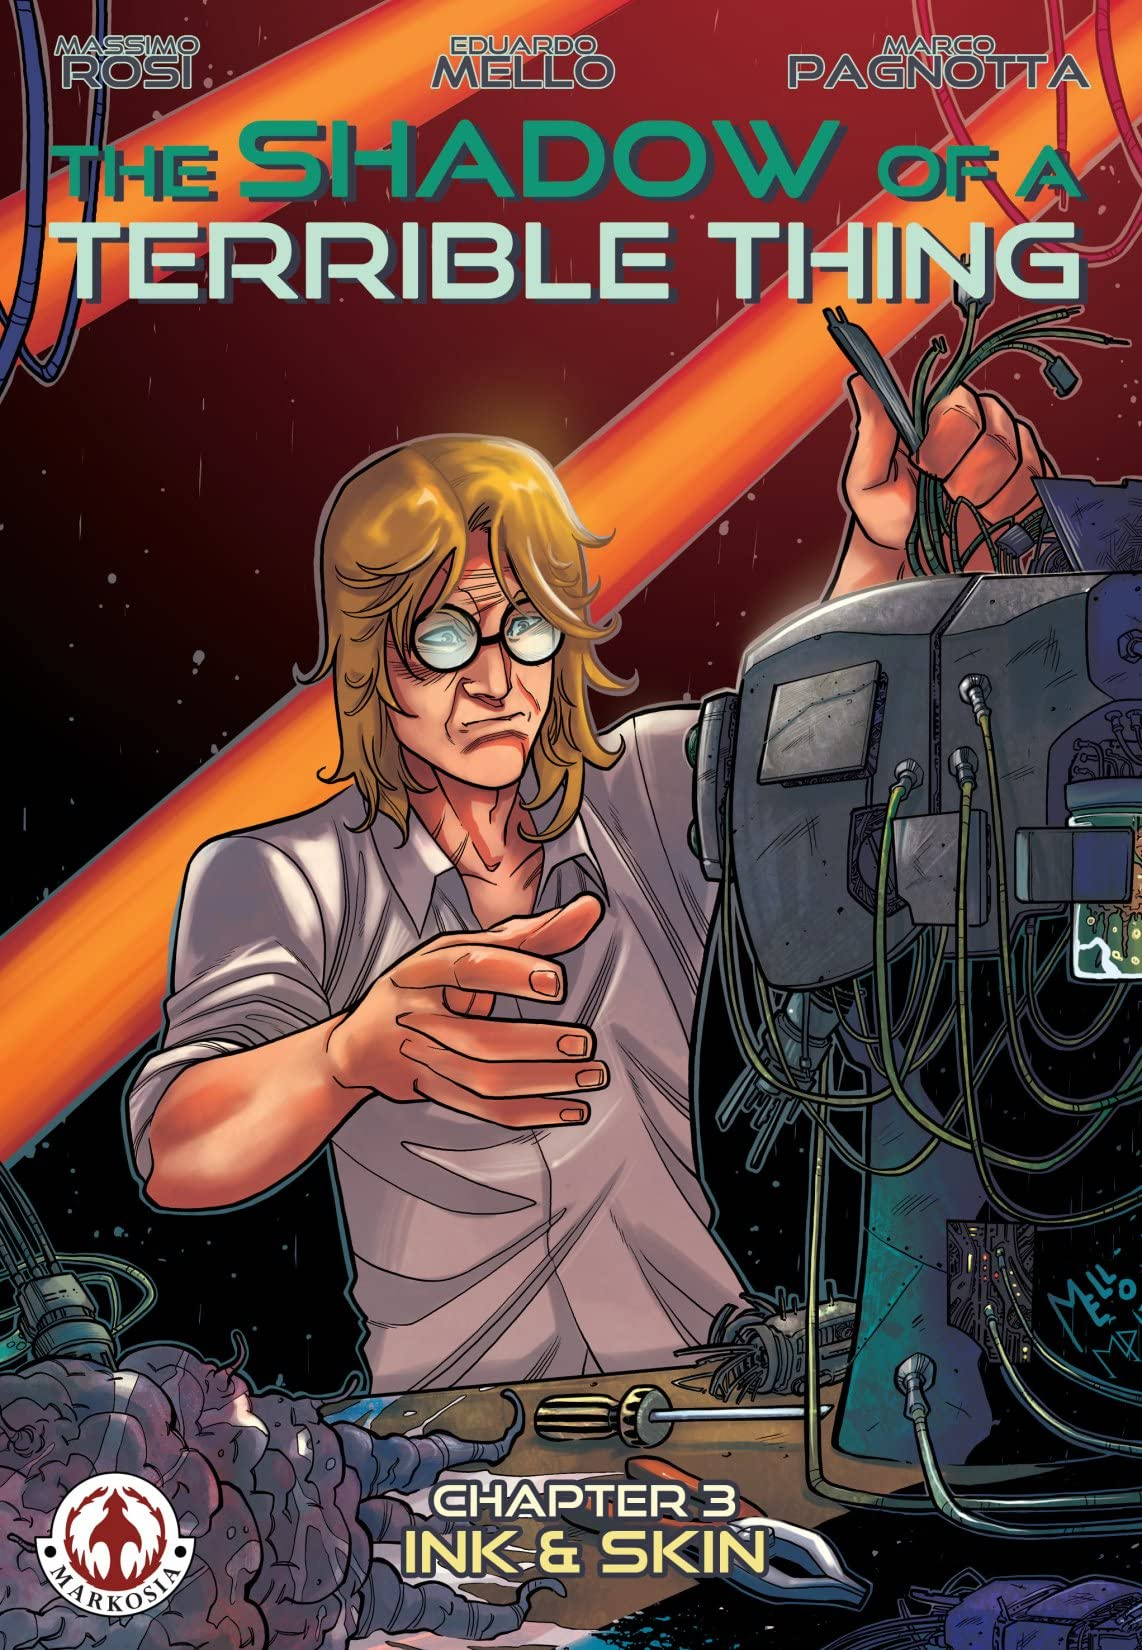 The Shadow of a Terrible Thing #3